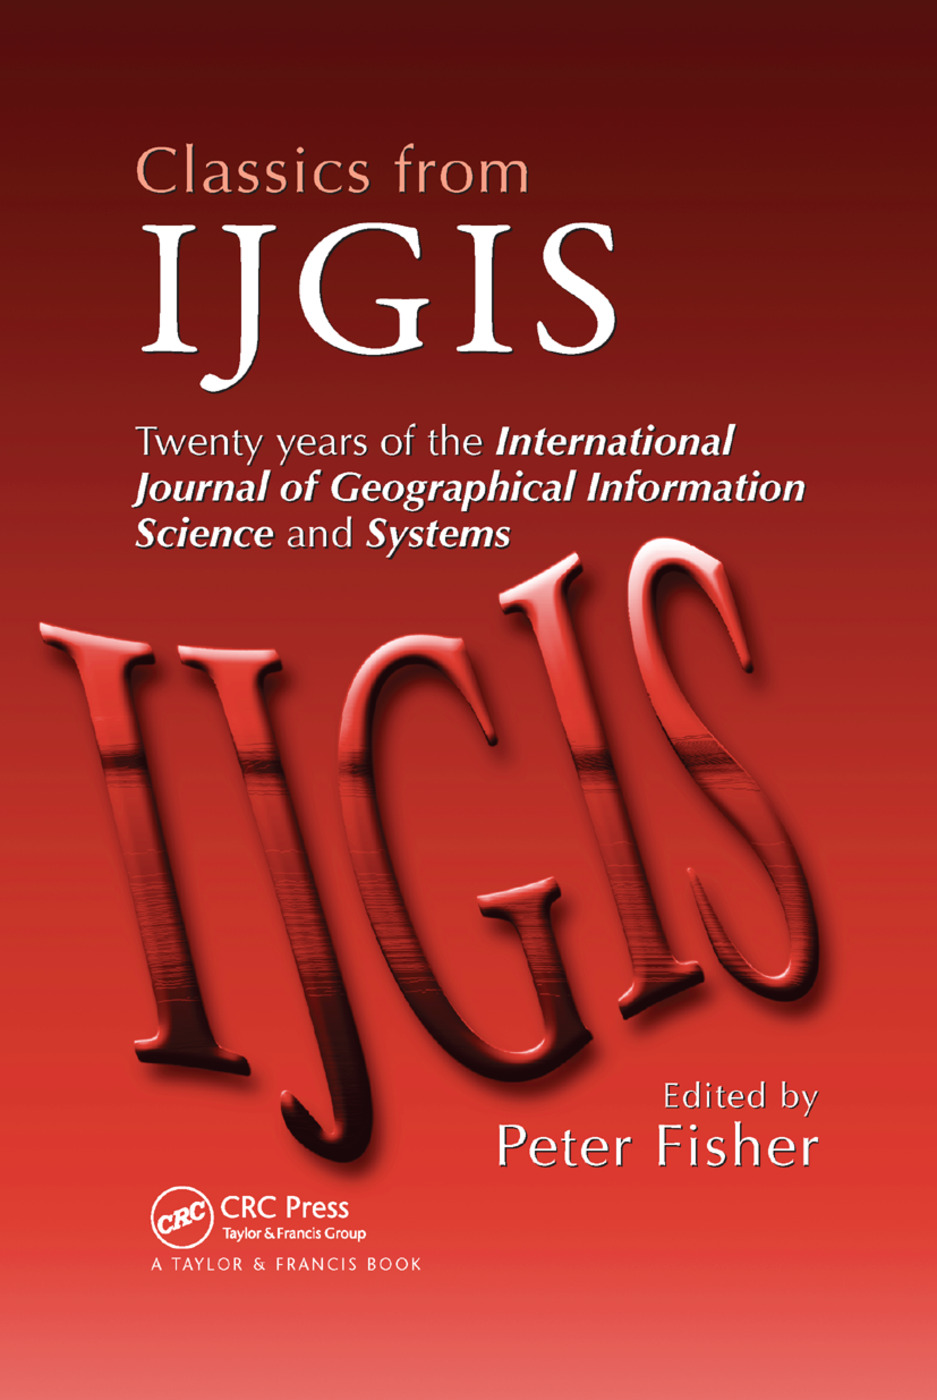 Classics from IJGIS: Twenty years of the International Journal of Geographical Information Science and Systems book cover